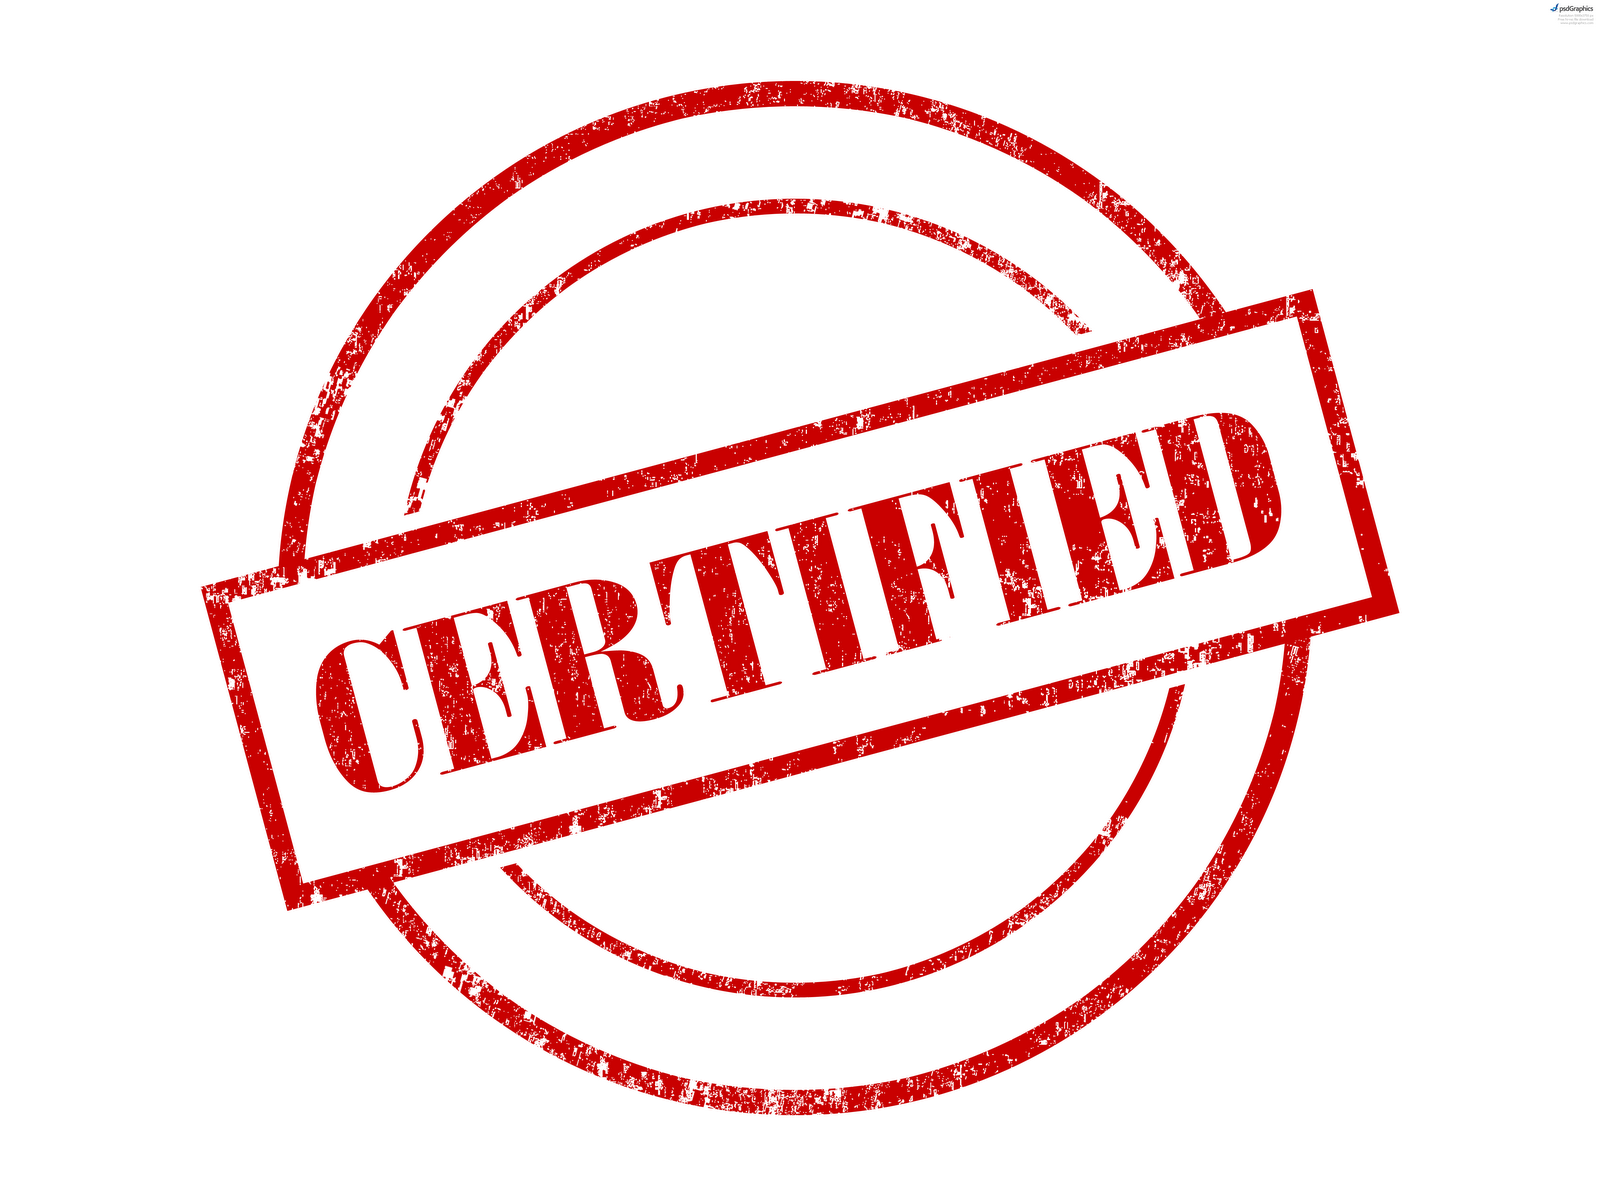 Certification For Home Care0 (0)